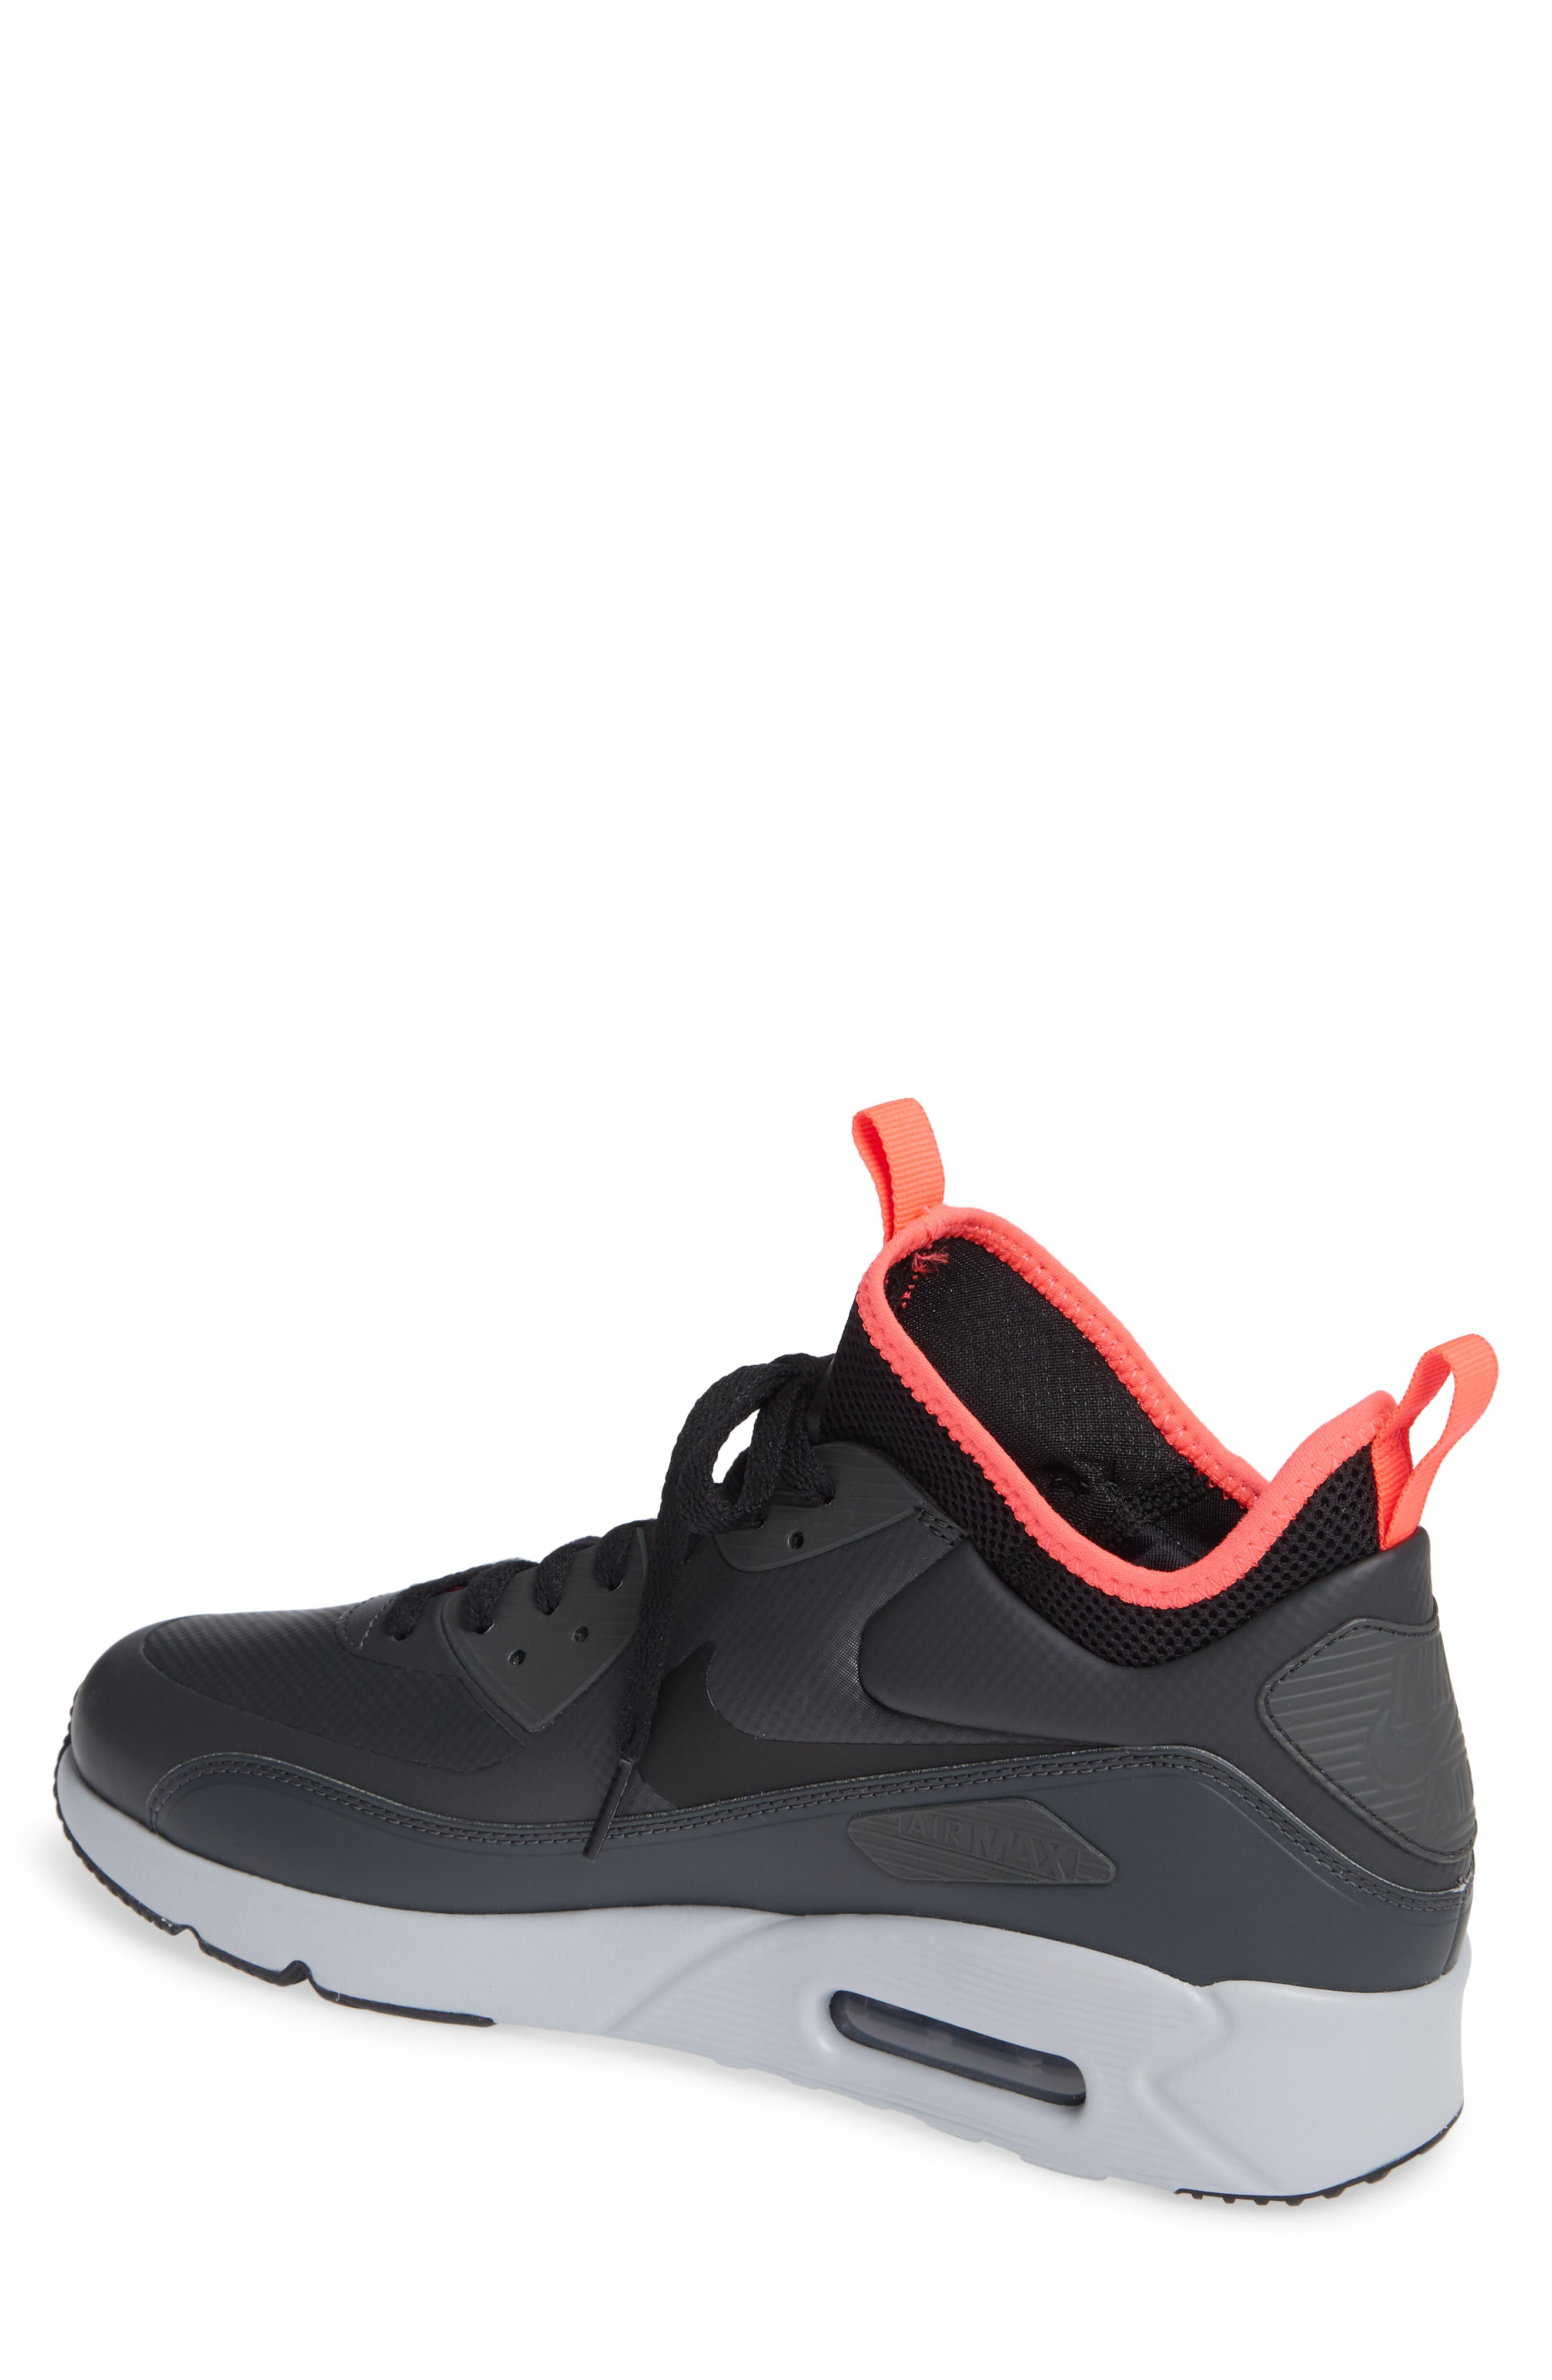 Air Max 90 Ultra Mid Winter Sneaker,                             Alternate thumbnail 2, color,                             ANTHRACITE/ BLACK/ SOLAR RED